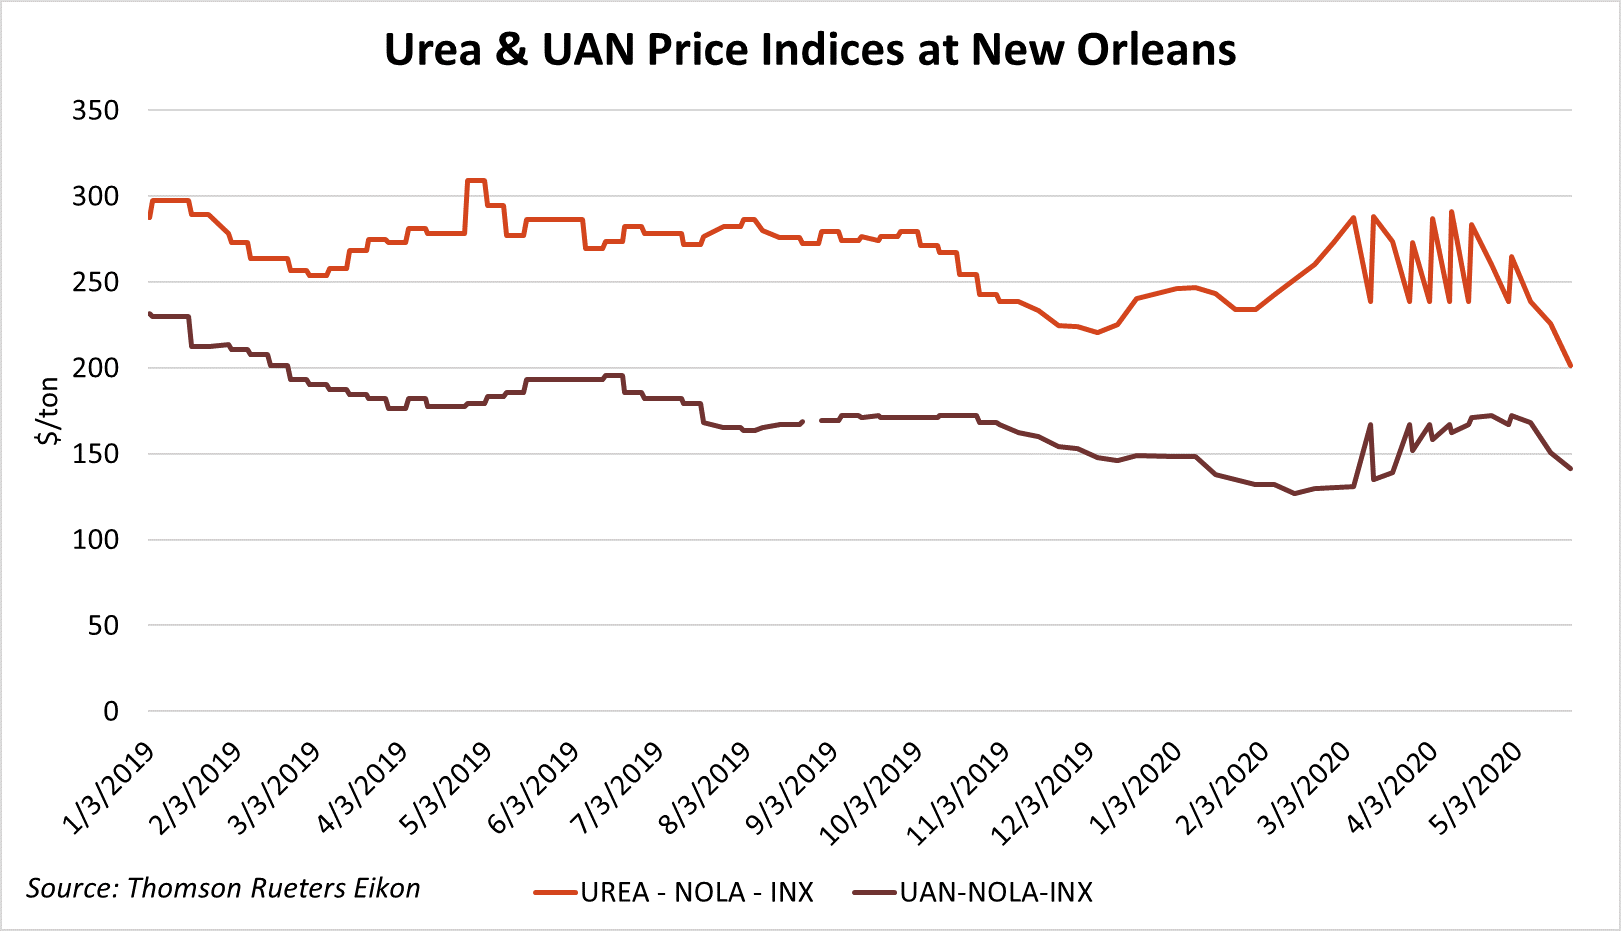 Urea and UAN Price Indices at New Orleans